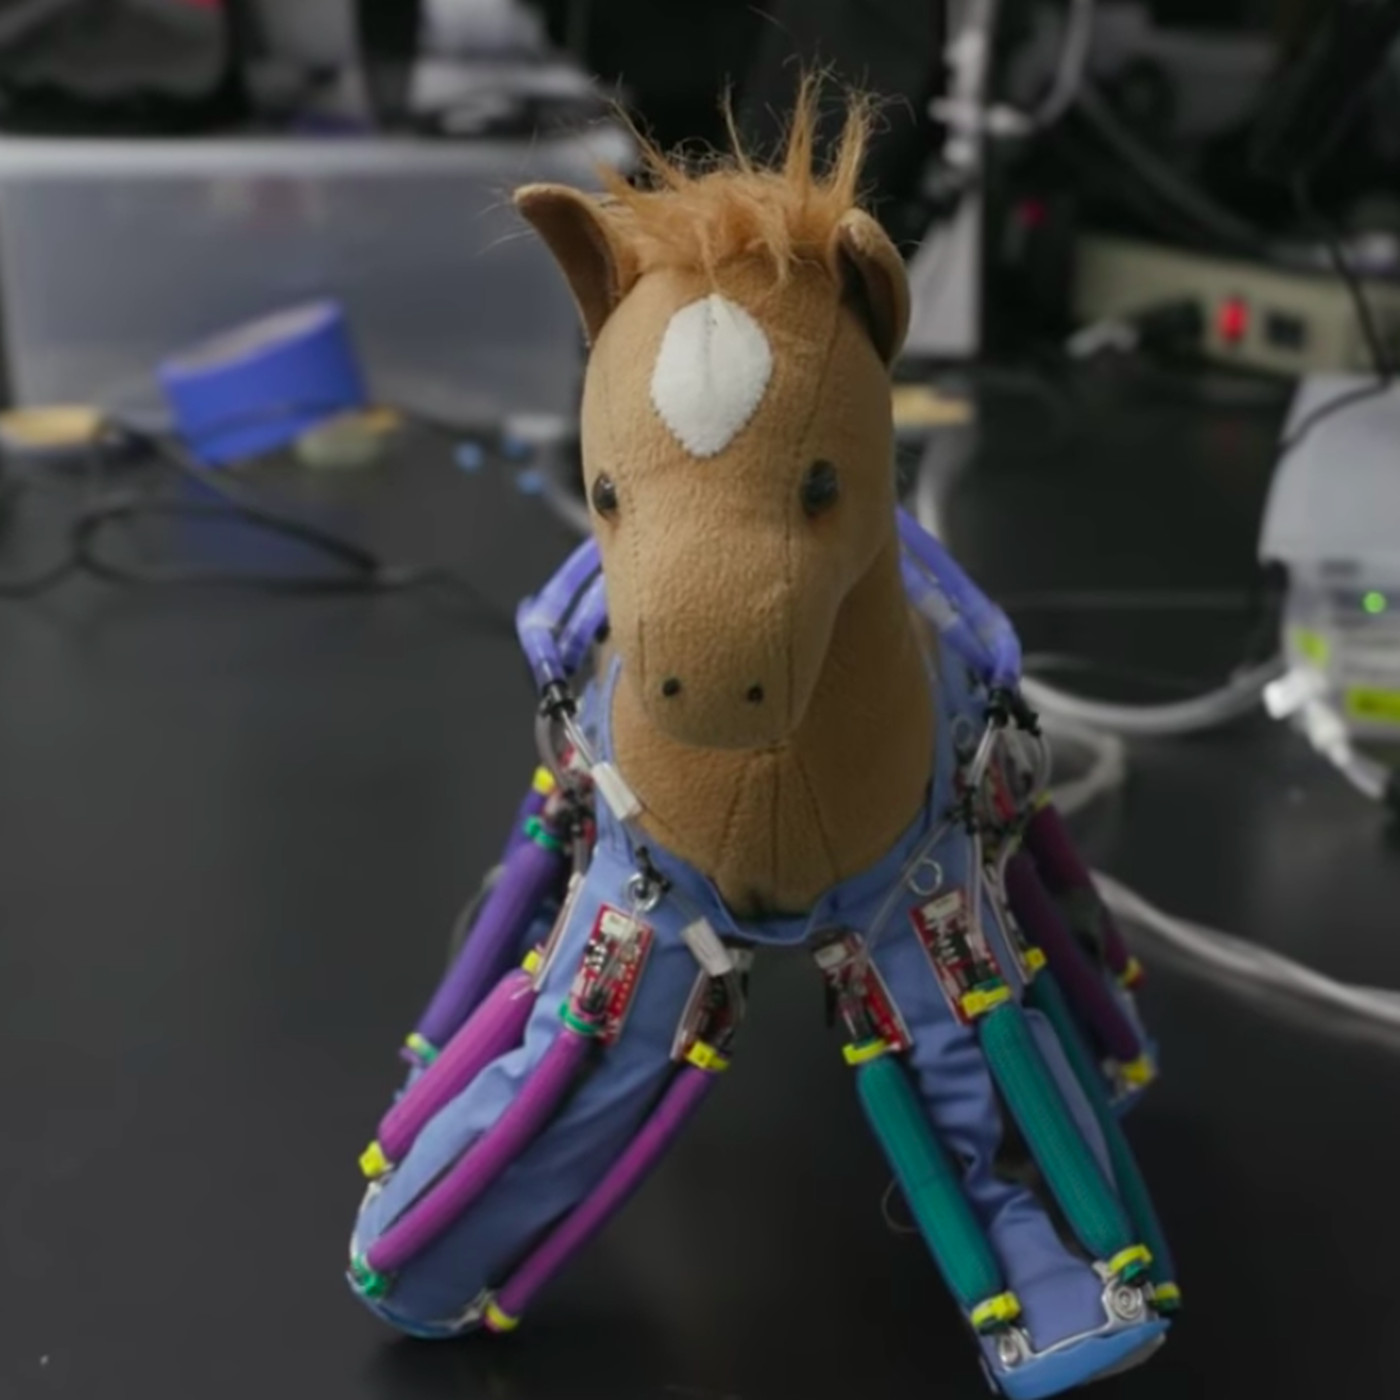 This Robotic Skin Can Bring Your Stuffed Toys To Life The Verge